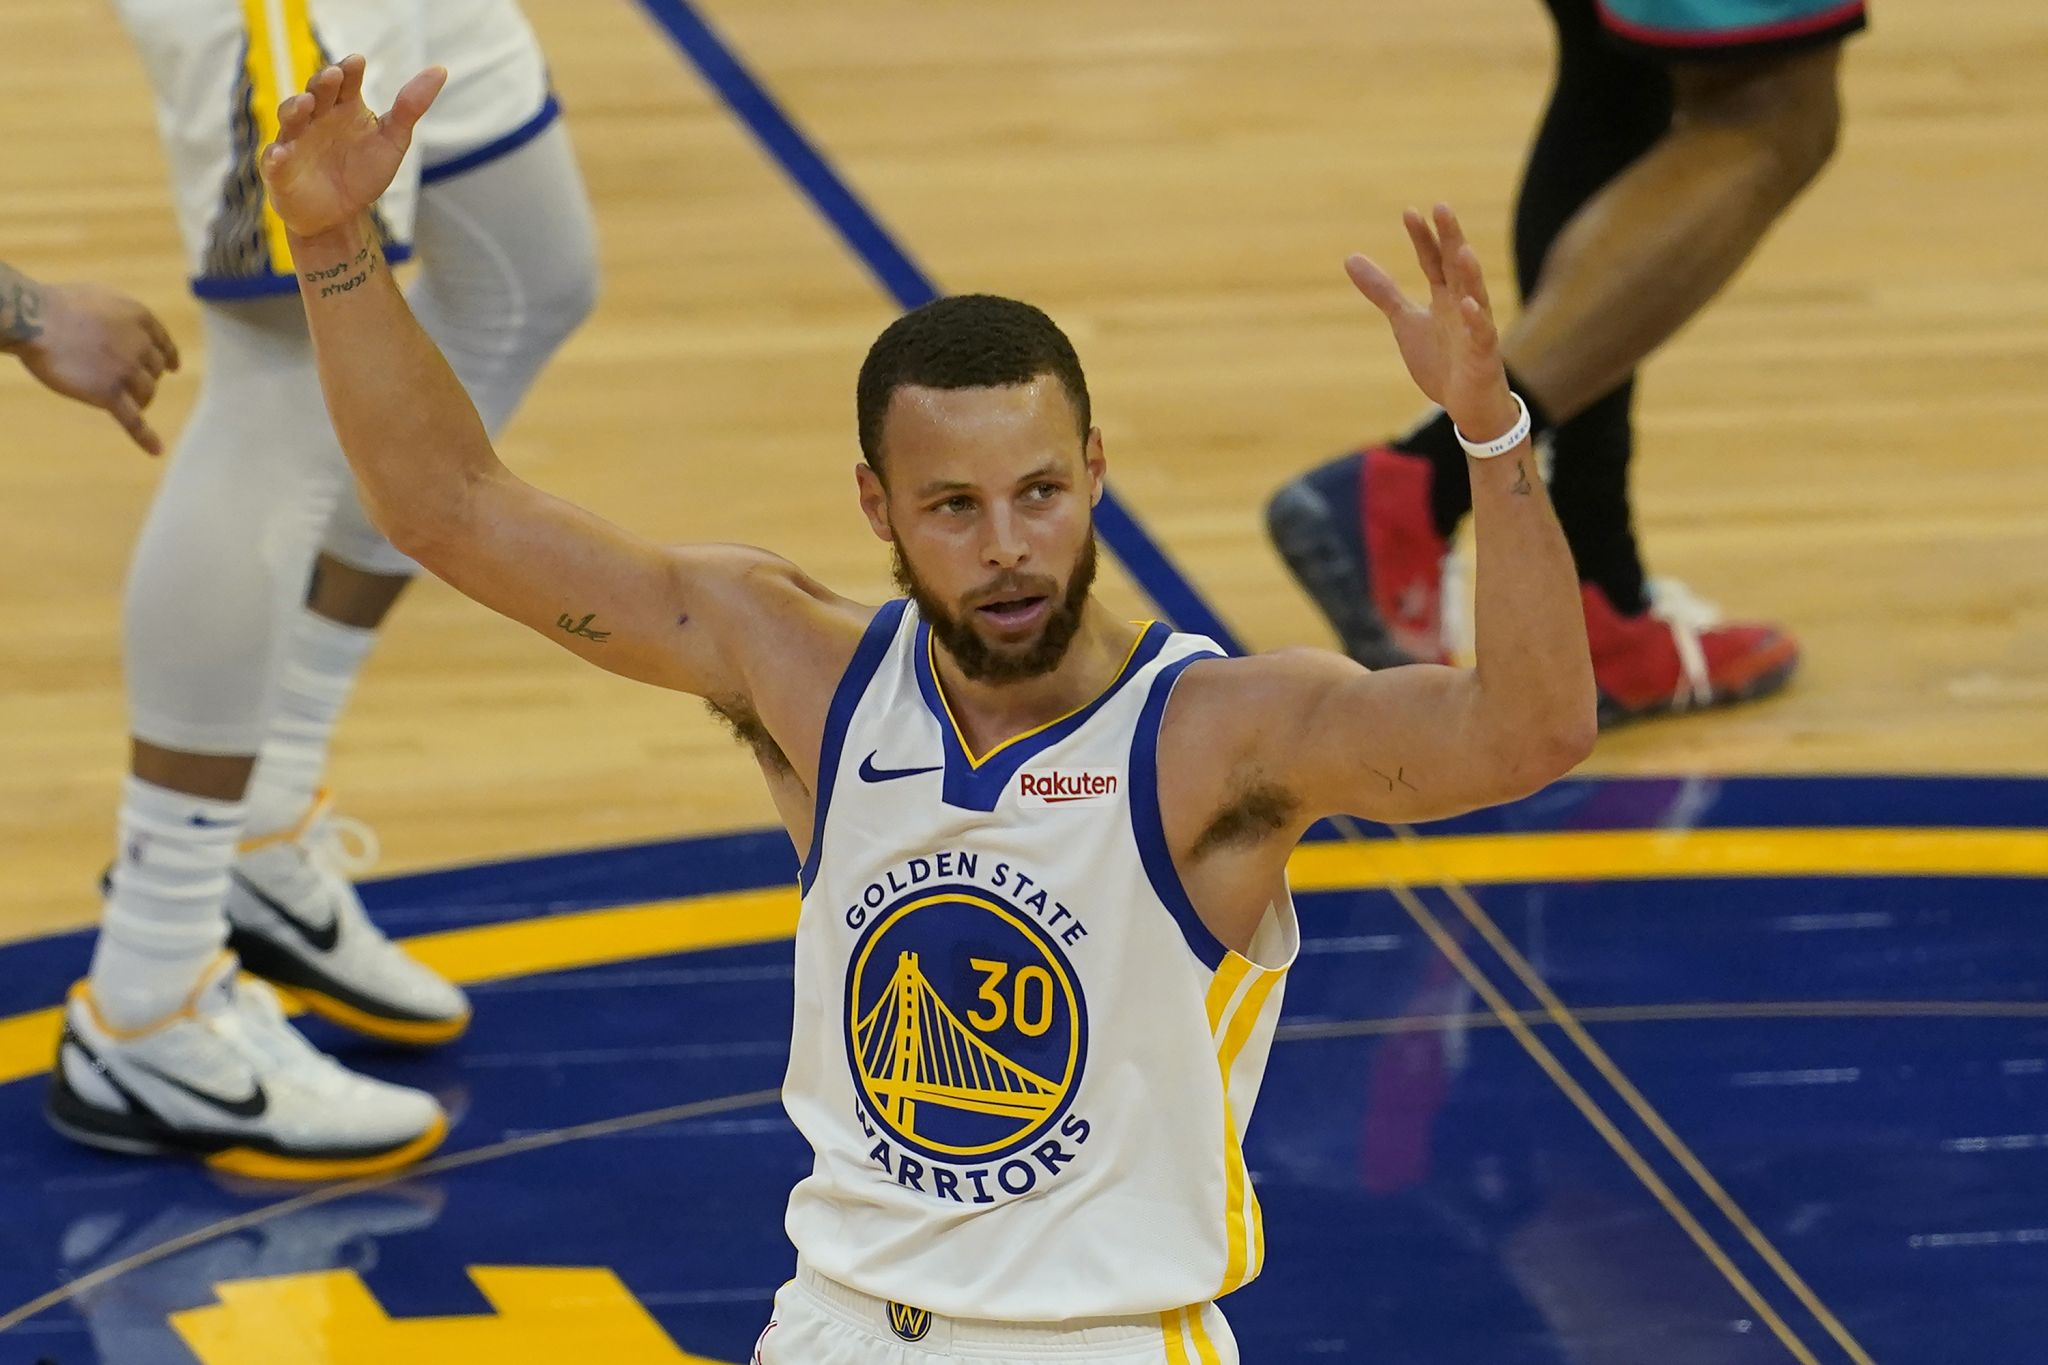 This TNT announcer is 1 of 2 who put Curry on All-NBA second team